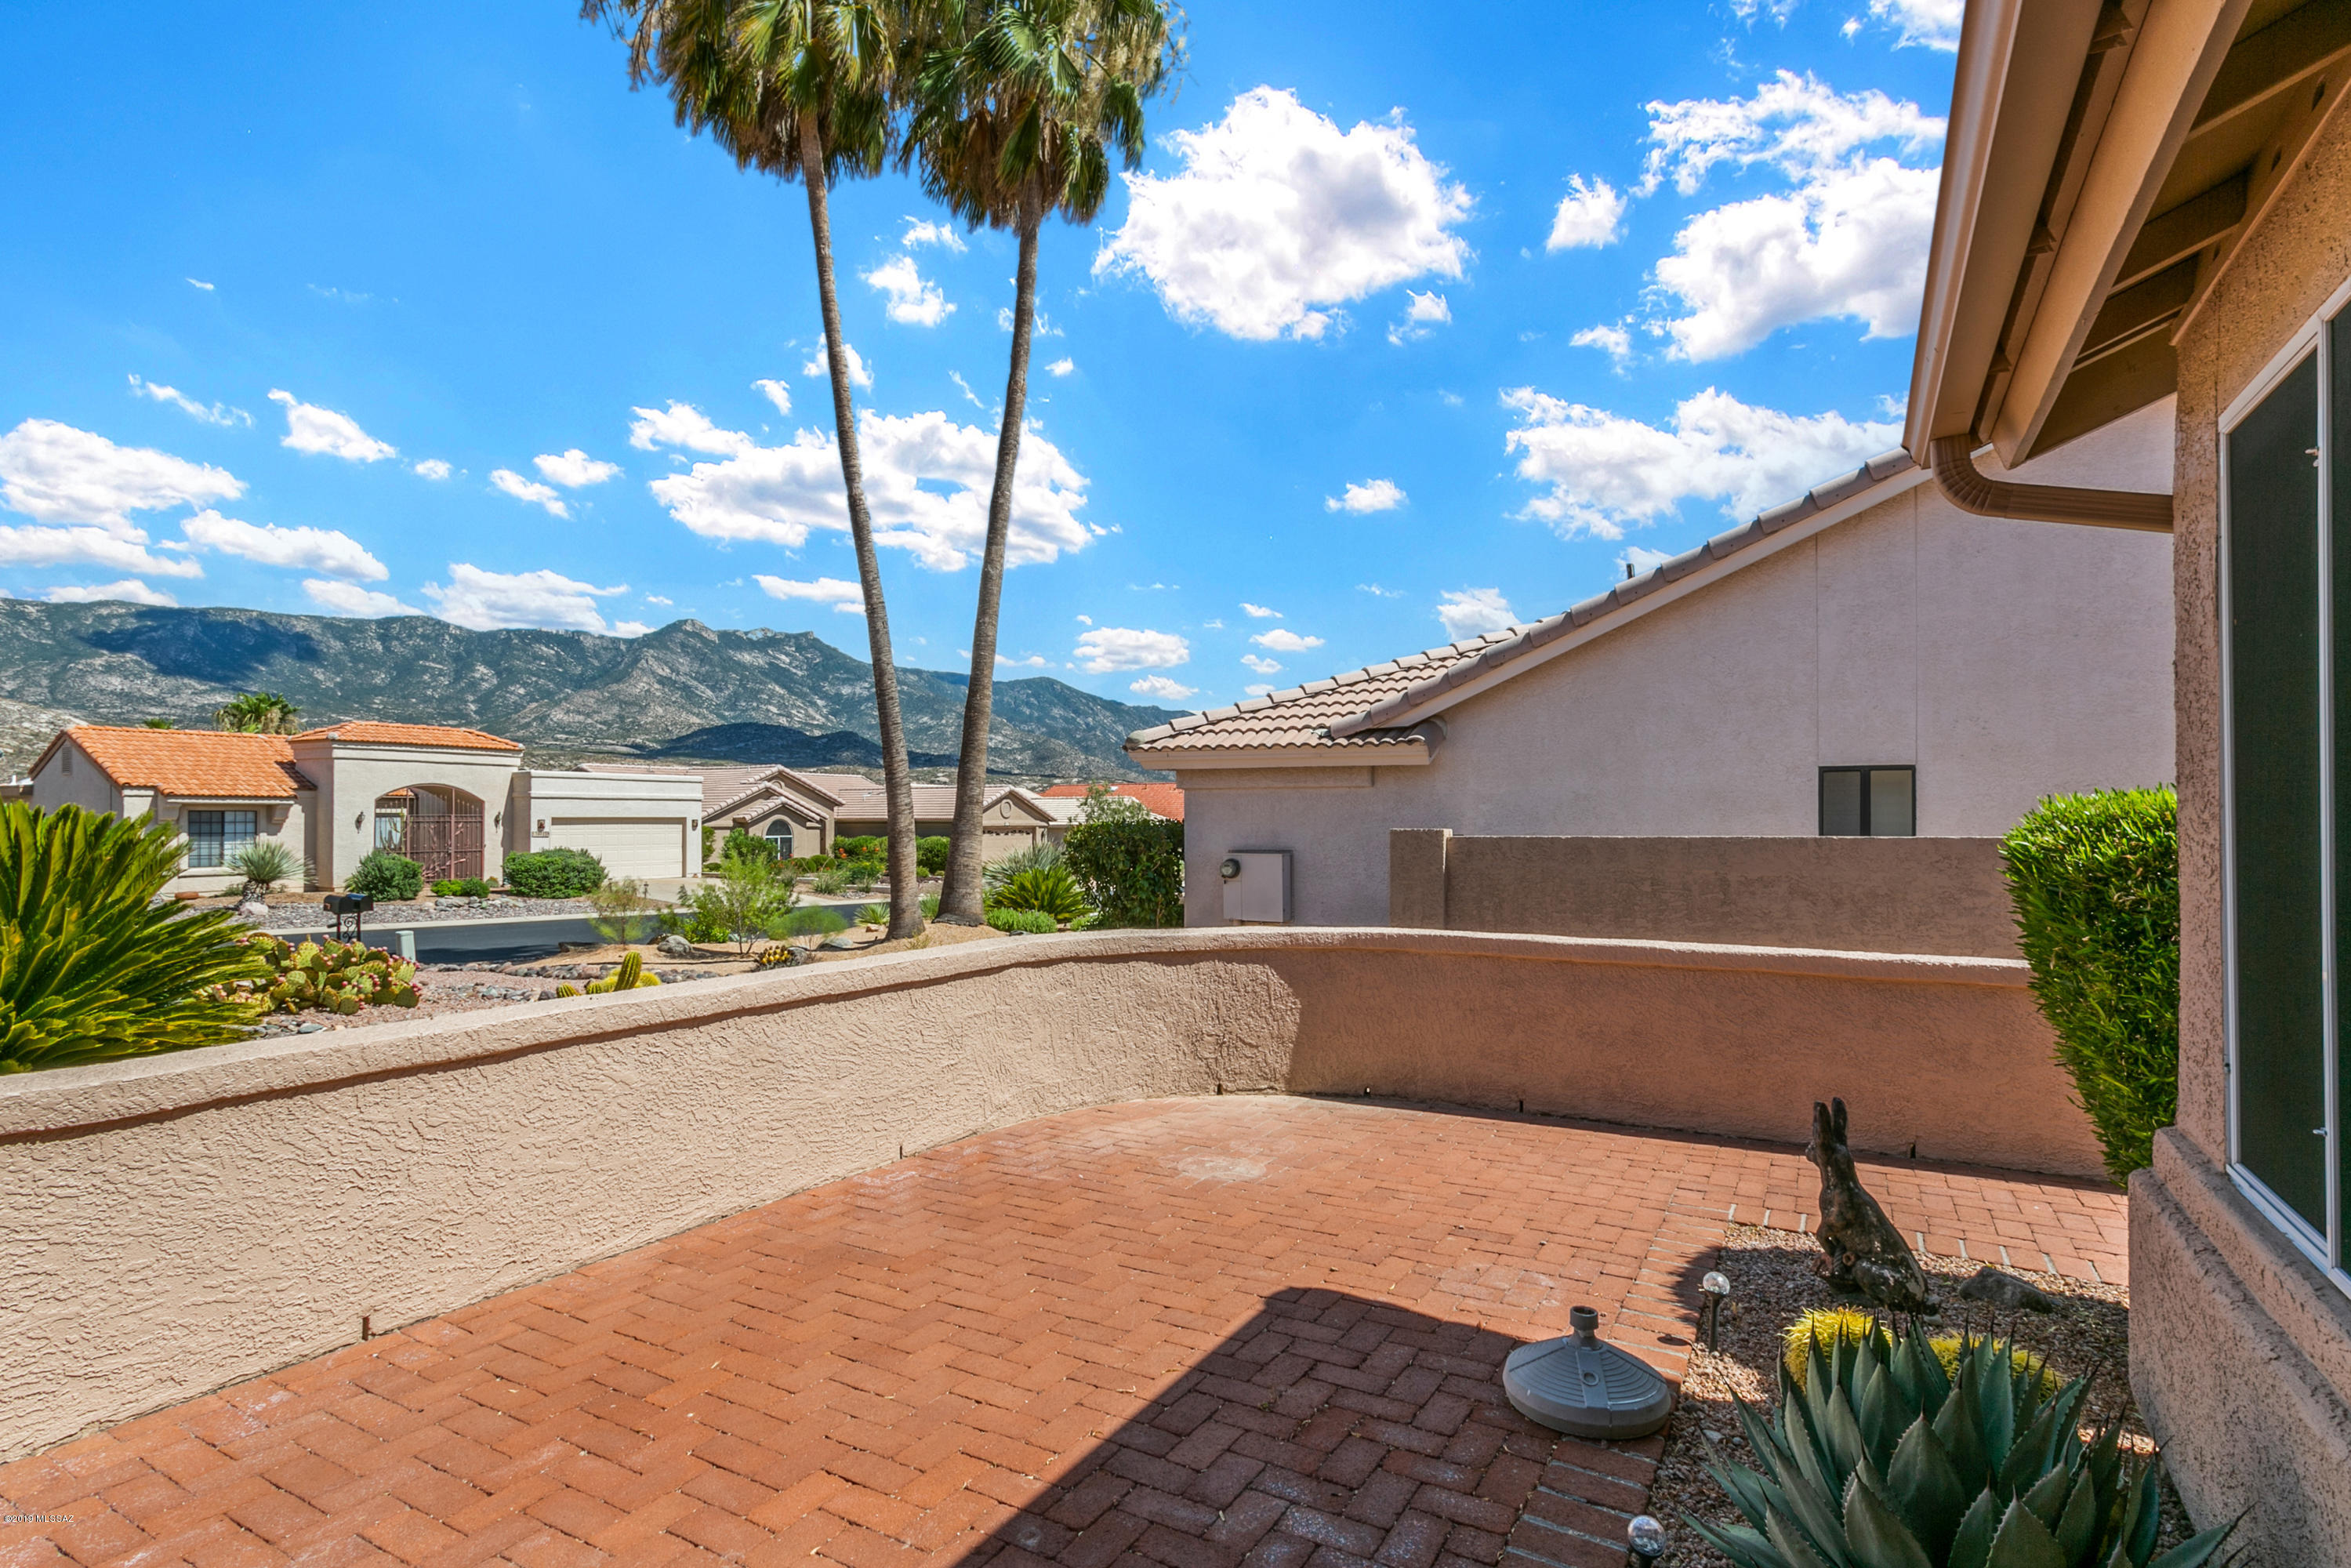 Photo of 37990 S Elbow Bend Drive, Tucson, AZ 85739